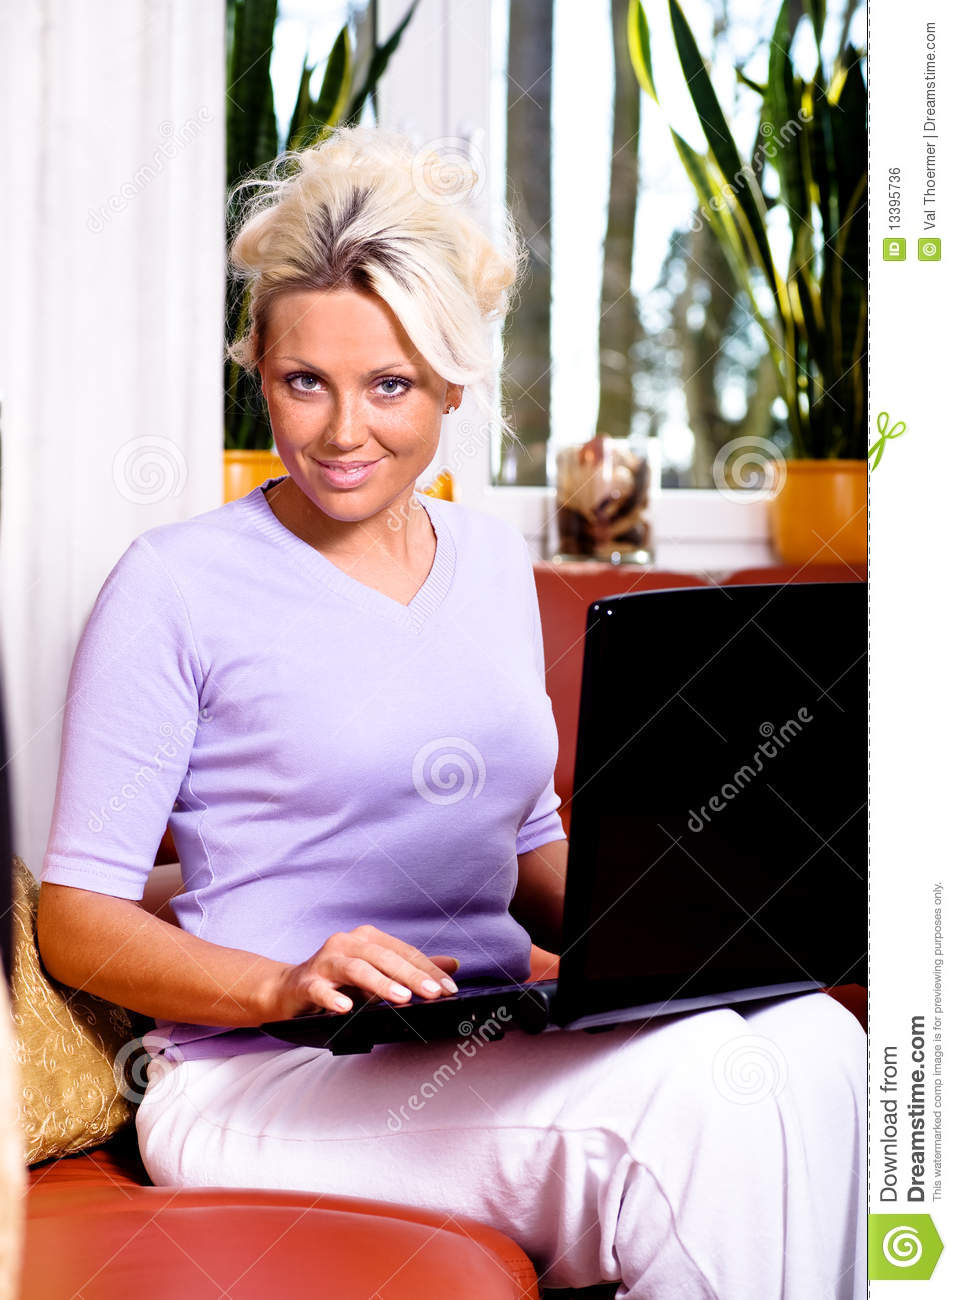 Chat girl stock photo. Image of adults, woman, interior